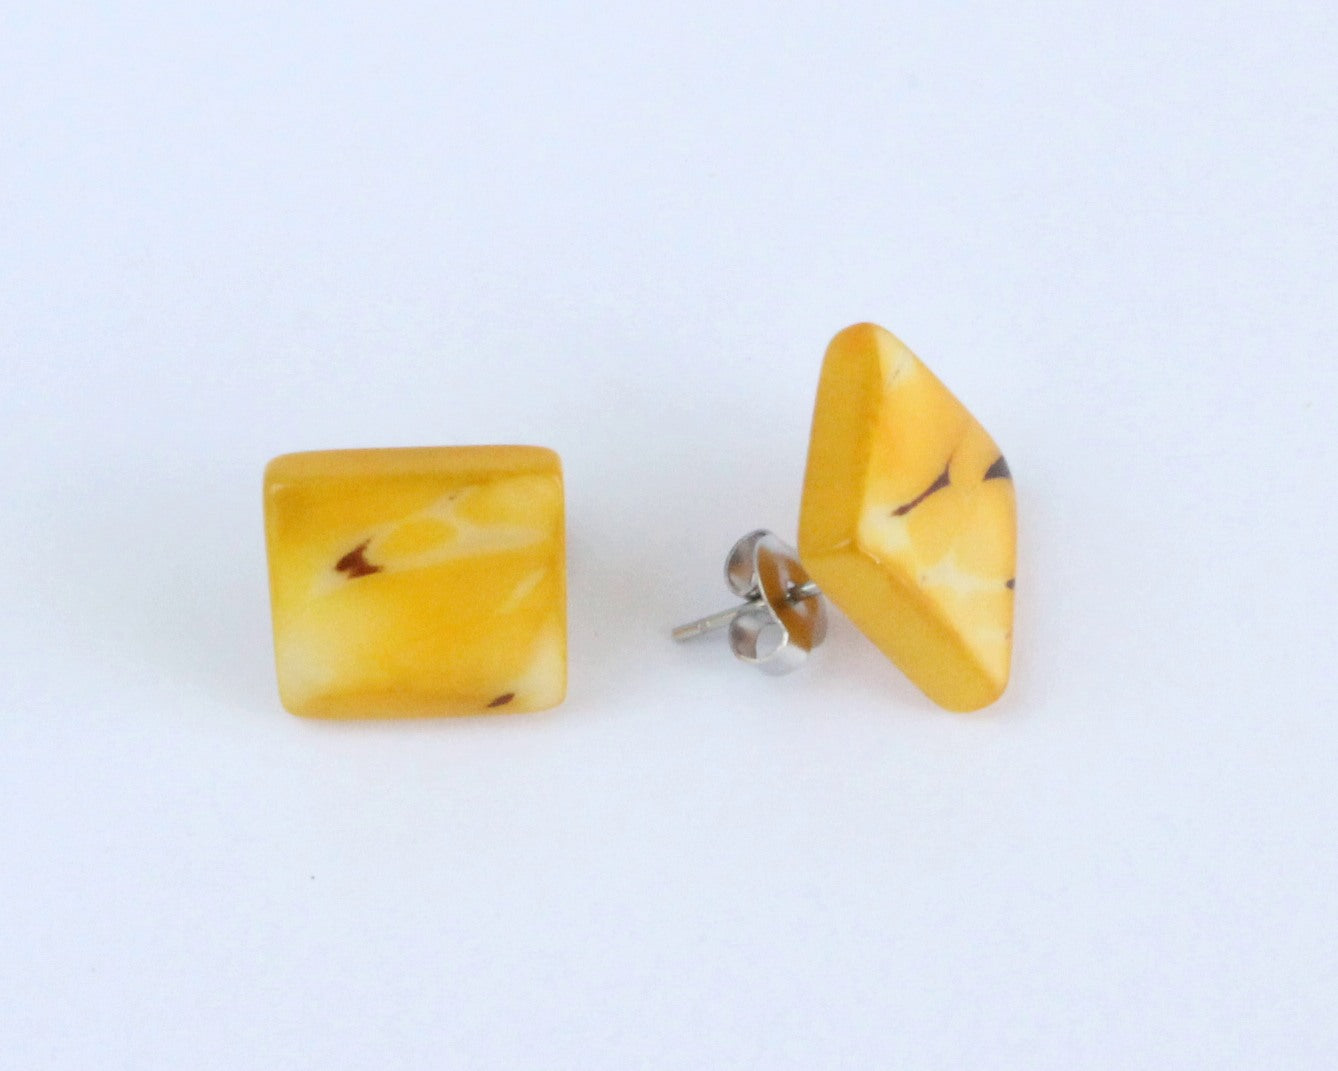 Handmade earring, sustainable, tagua, stud, push back, yellow, side